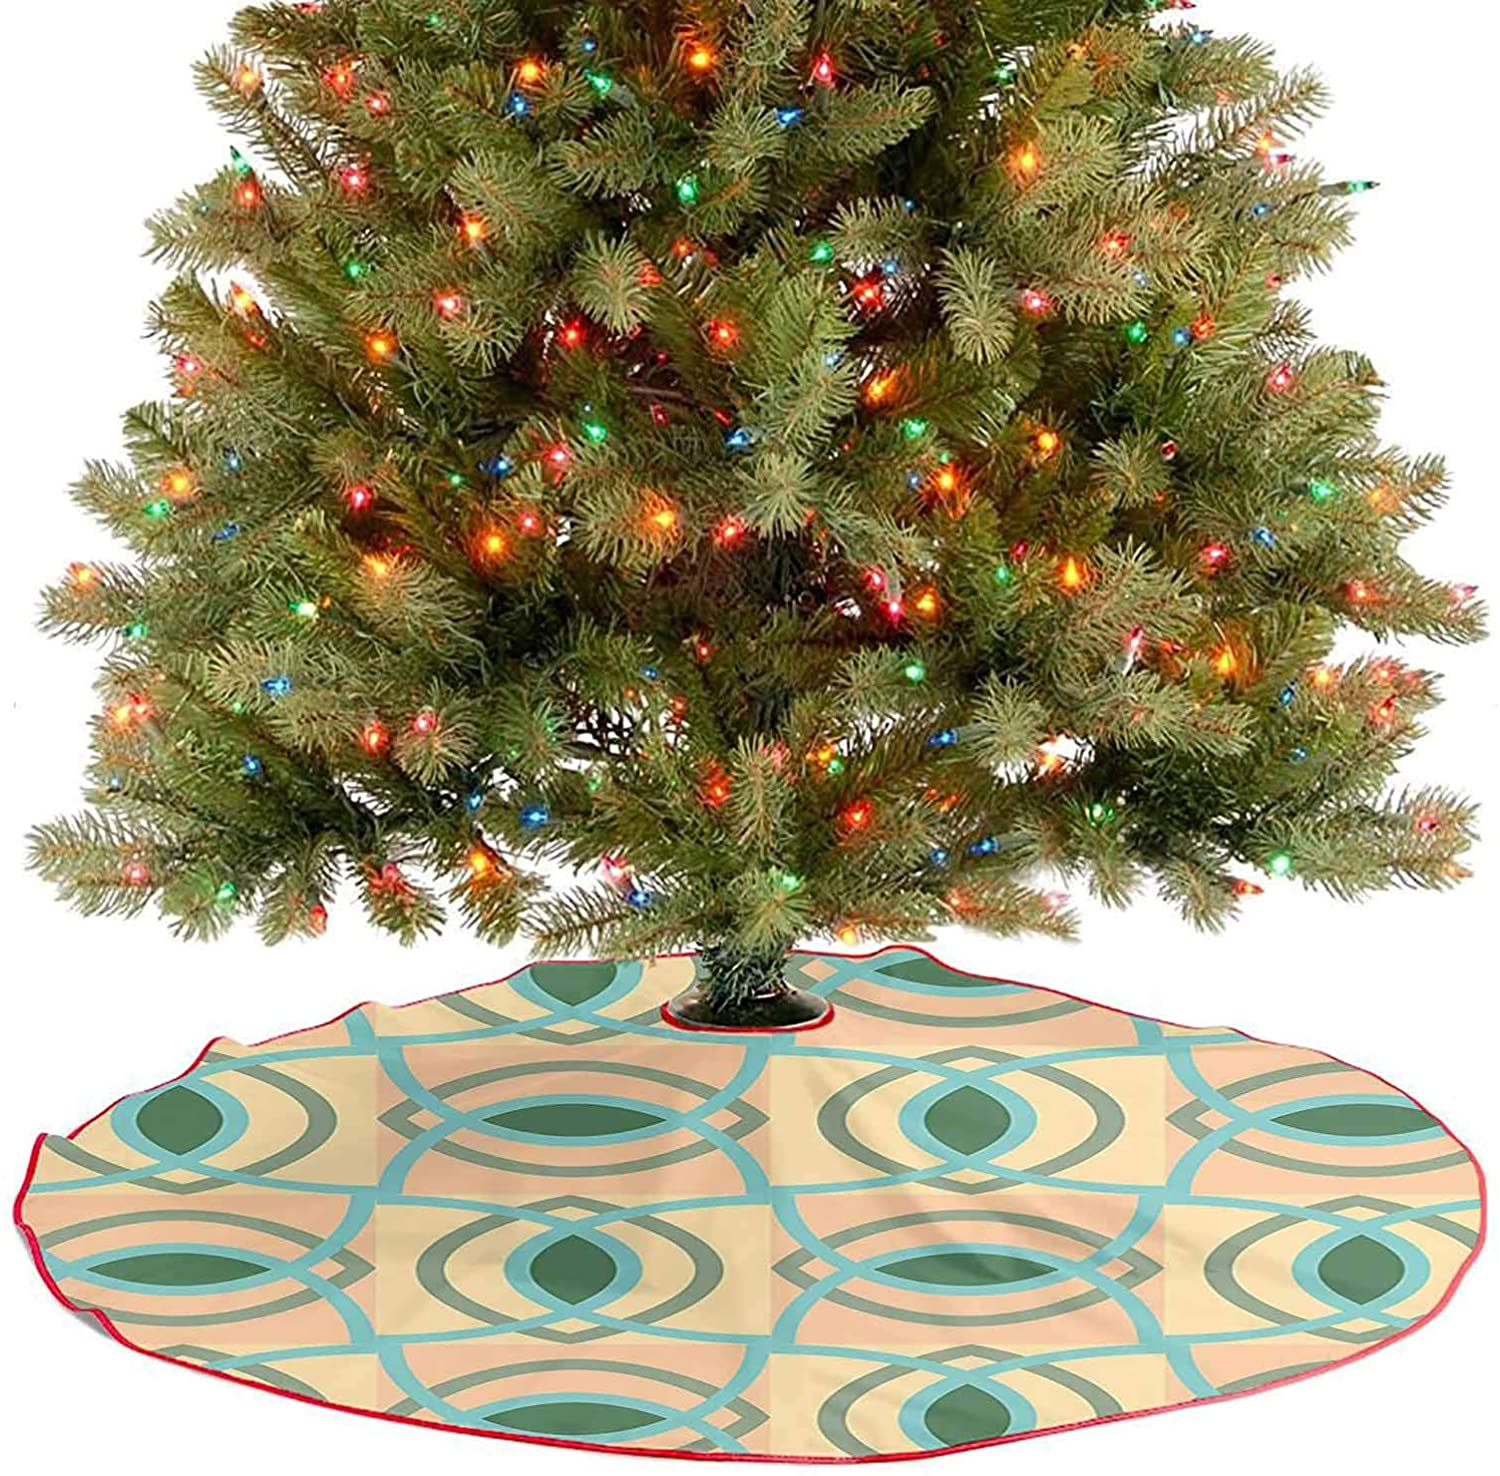 Rustic Xmas Tree Skirt Contemporary Geometric Design with Vector Tile Art Print Light Green Baby Blue and Xmas Party Holiday Decorations for Xmas Party Supplies Large Halloween - 48 Inch